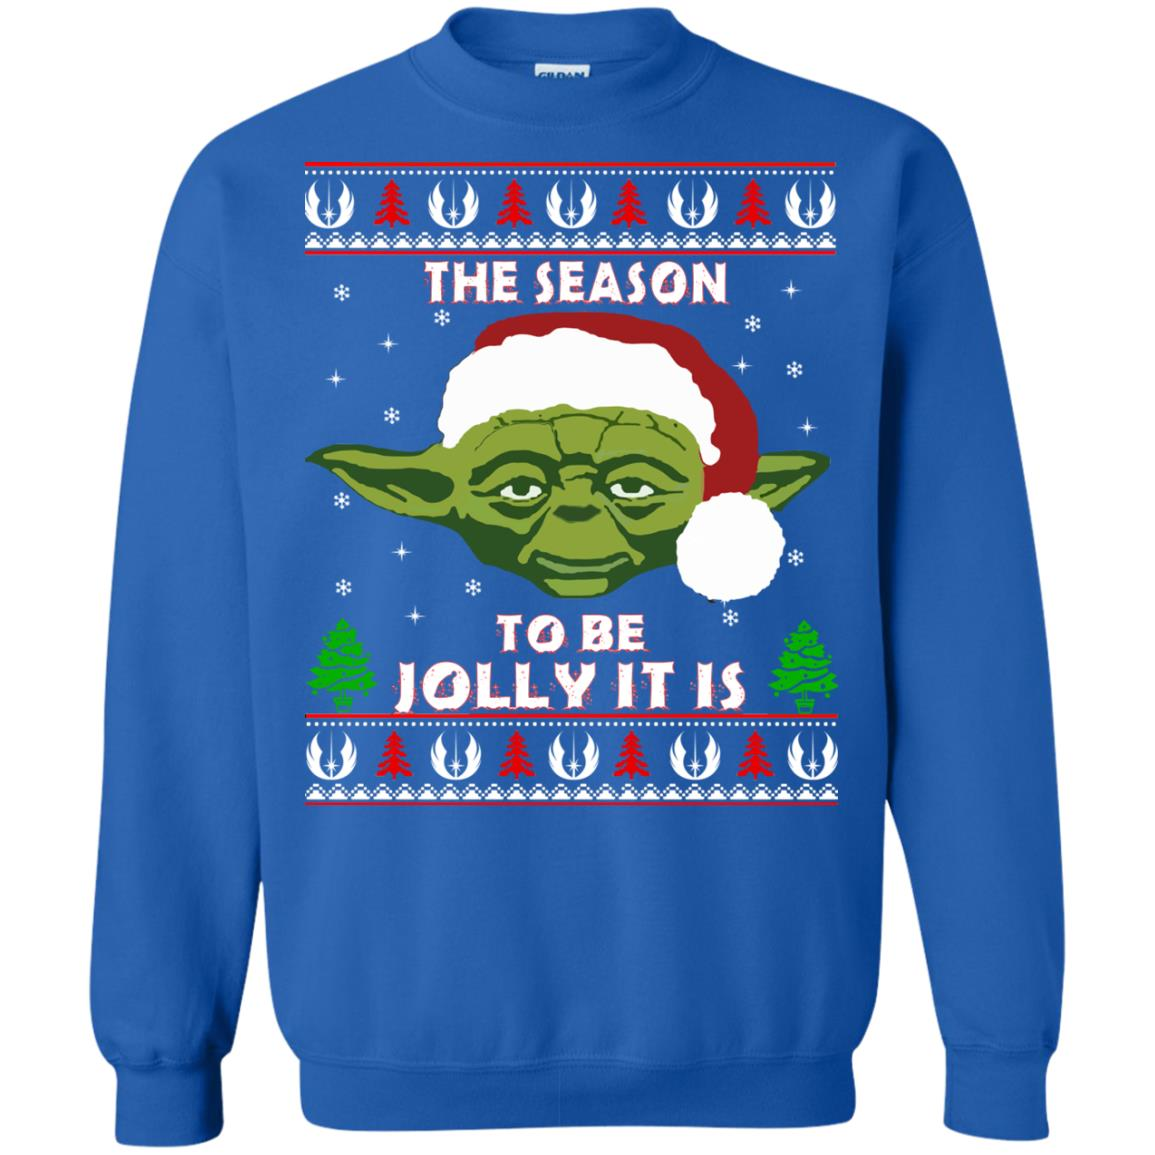 image 1708 - Star Wars Yoda: Tis the season to be jolly it is Christmas sweater, hoodie